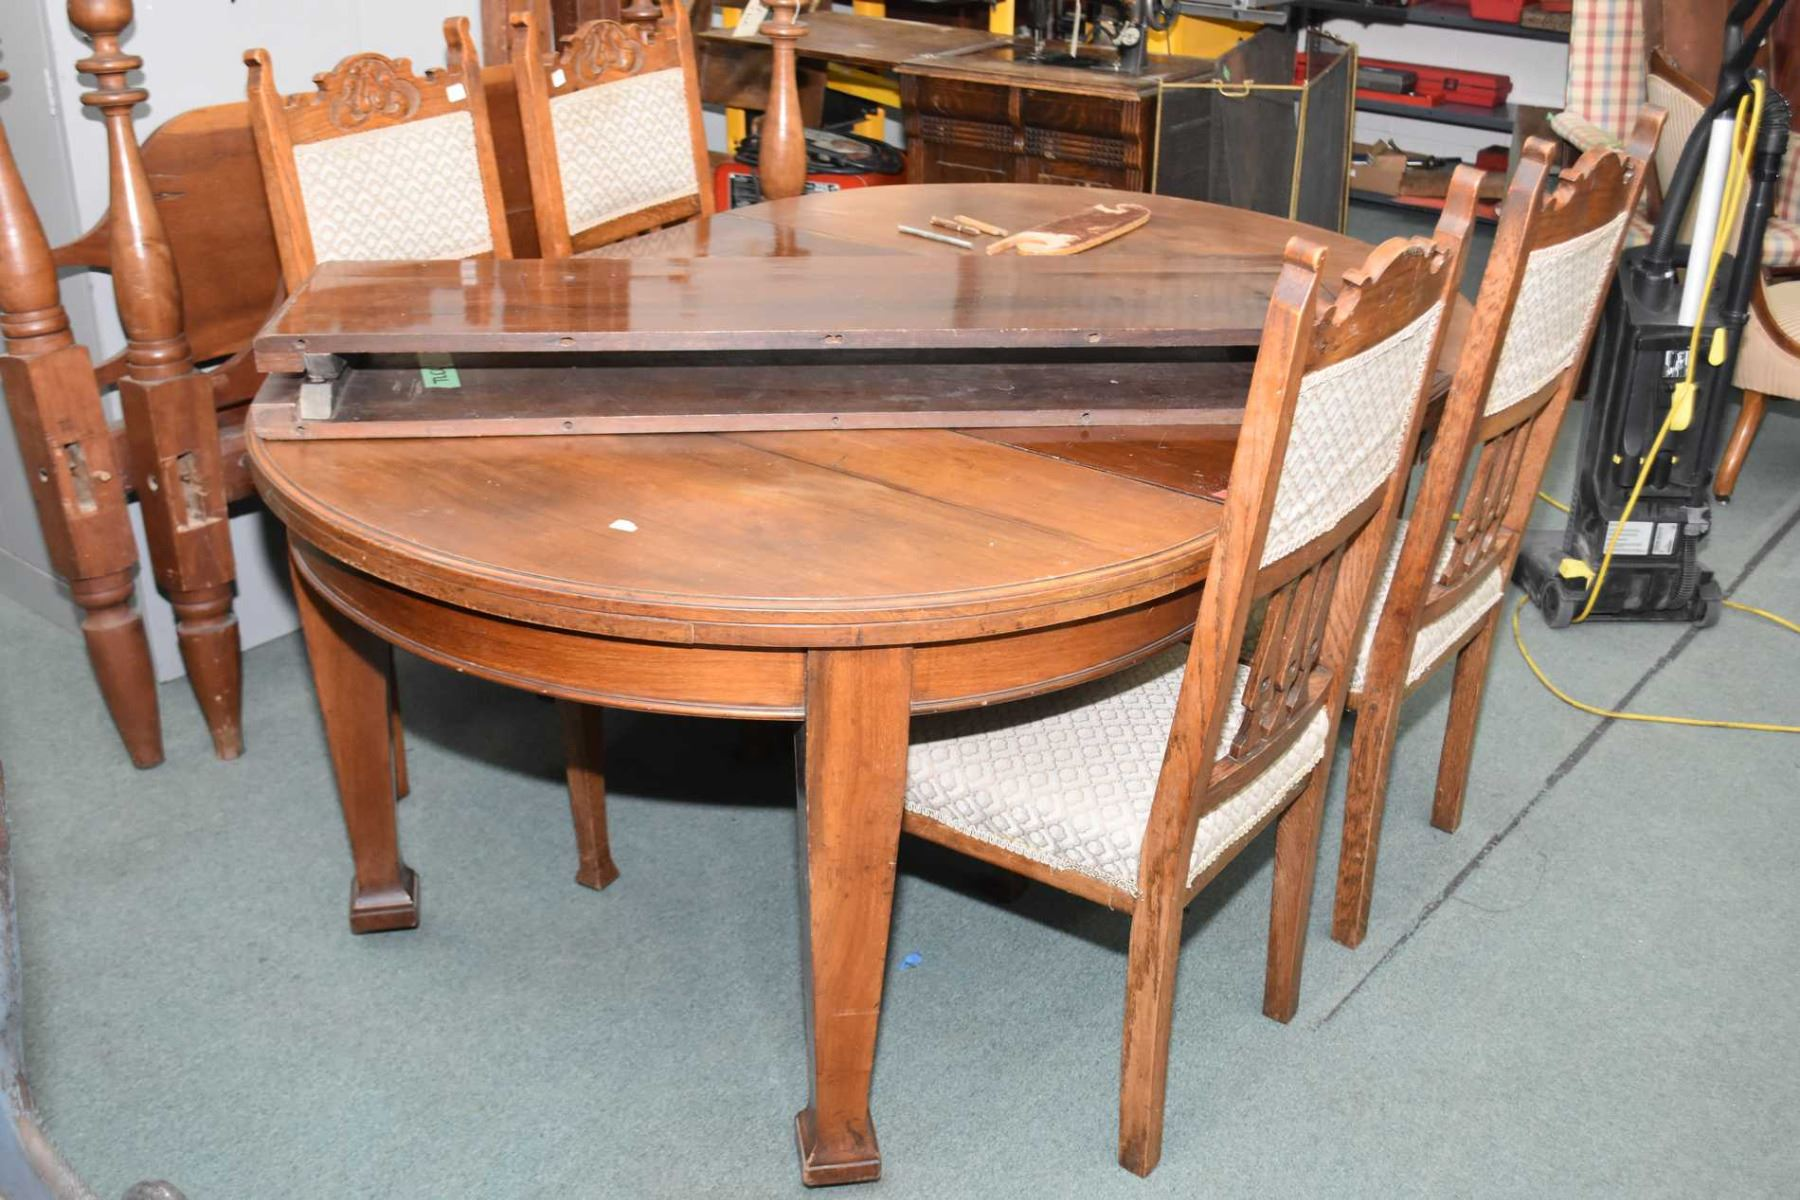 Antique 48 Round Dining Table With Three Insert Leaves And Set Of Four Complimenting Dining Chairs